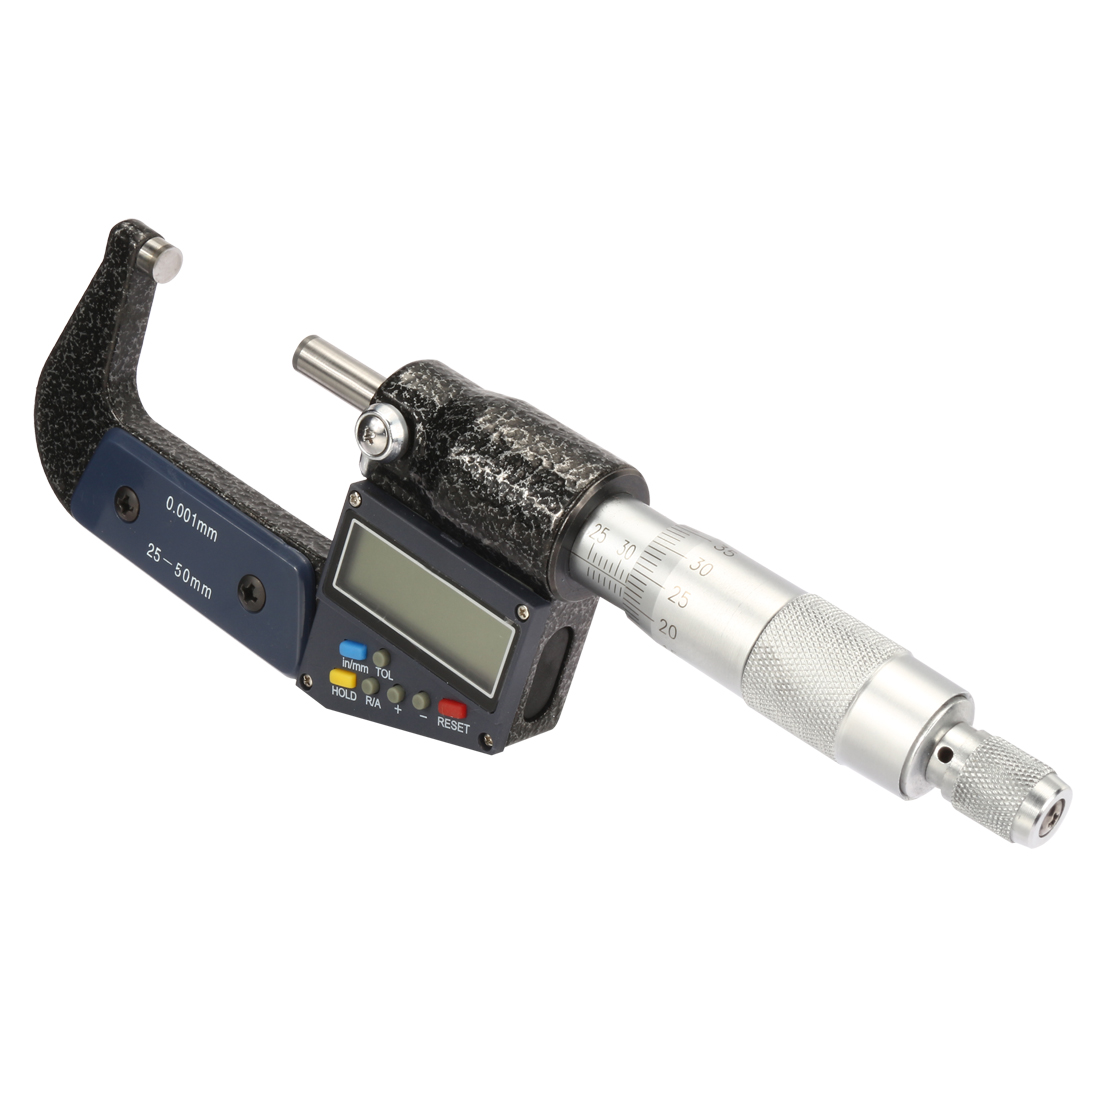 1-inch - 2-inch /25mm-50mm Digital Digimatic Outside Micrometer w Calibration, Electronic LCD Display